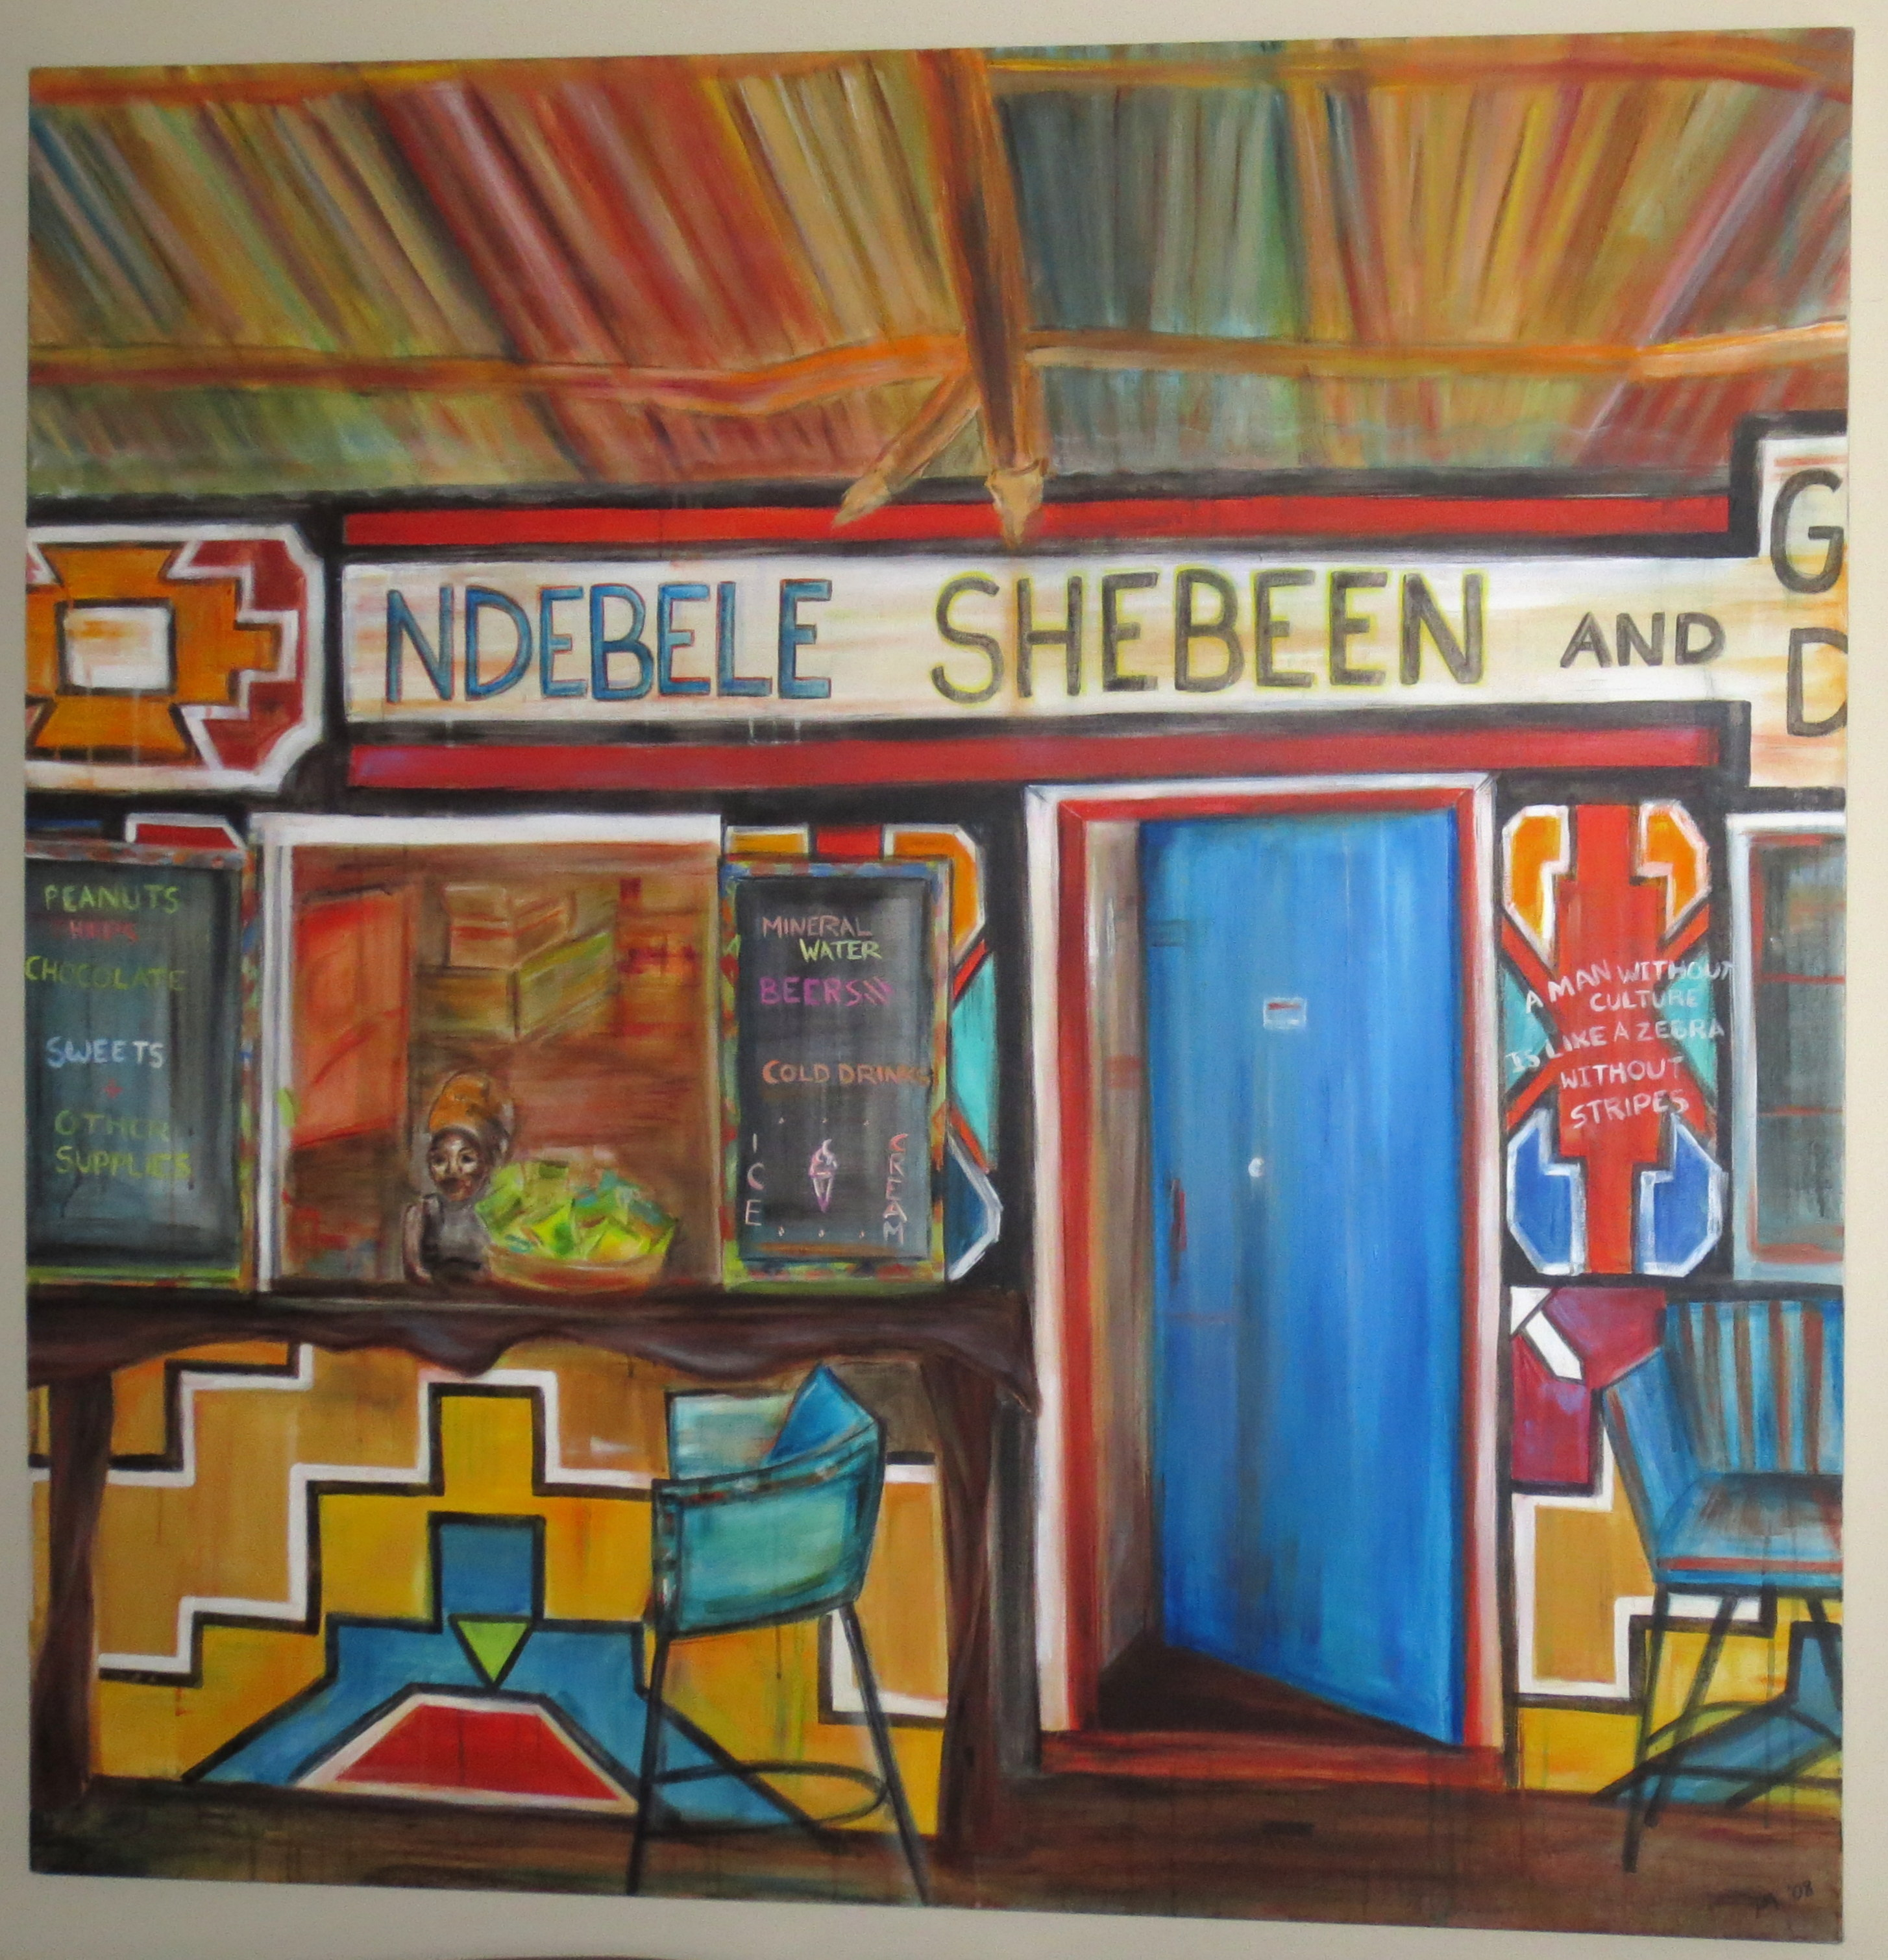 Ndeble Shebeen